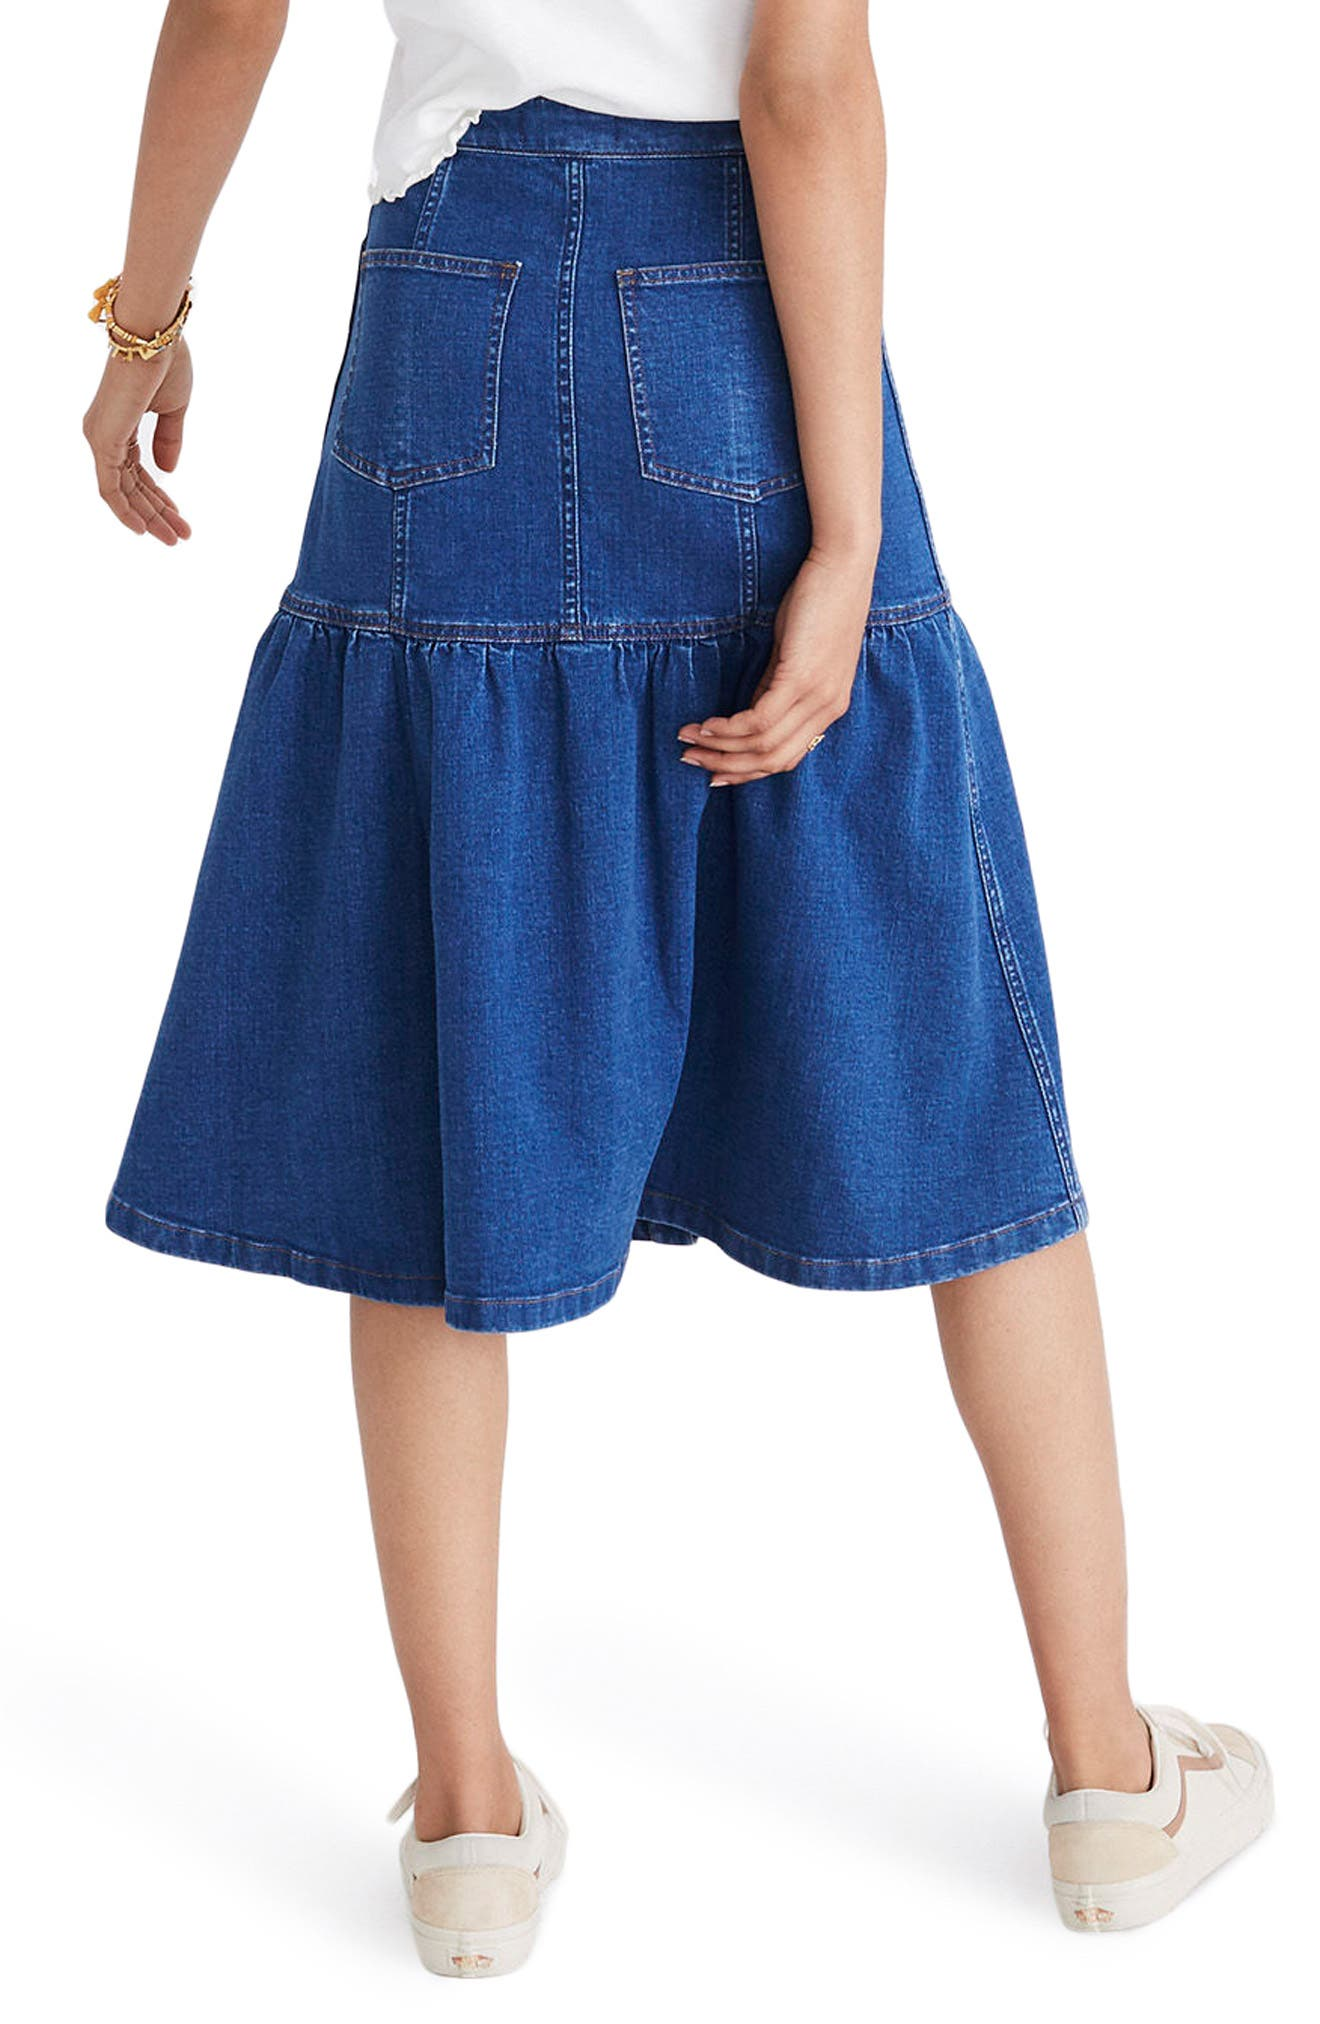 Bayview Tiered Denim Midi Skirt,                             Alternate thumbnail 2, color,                             400